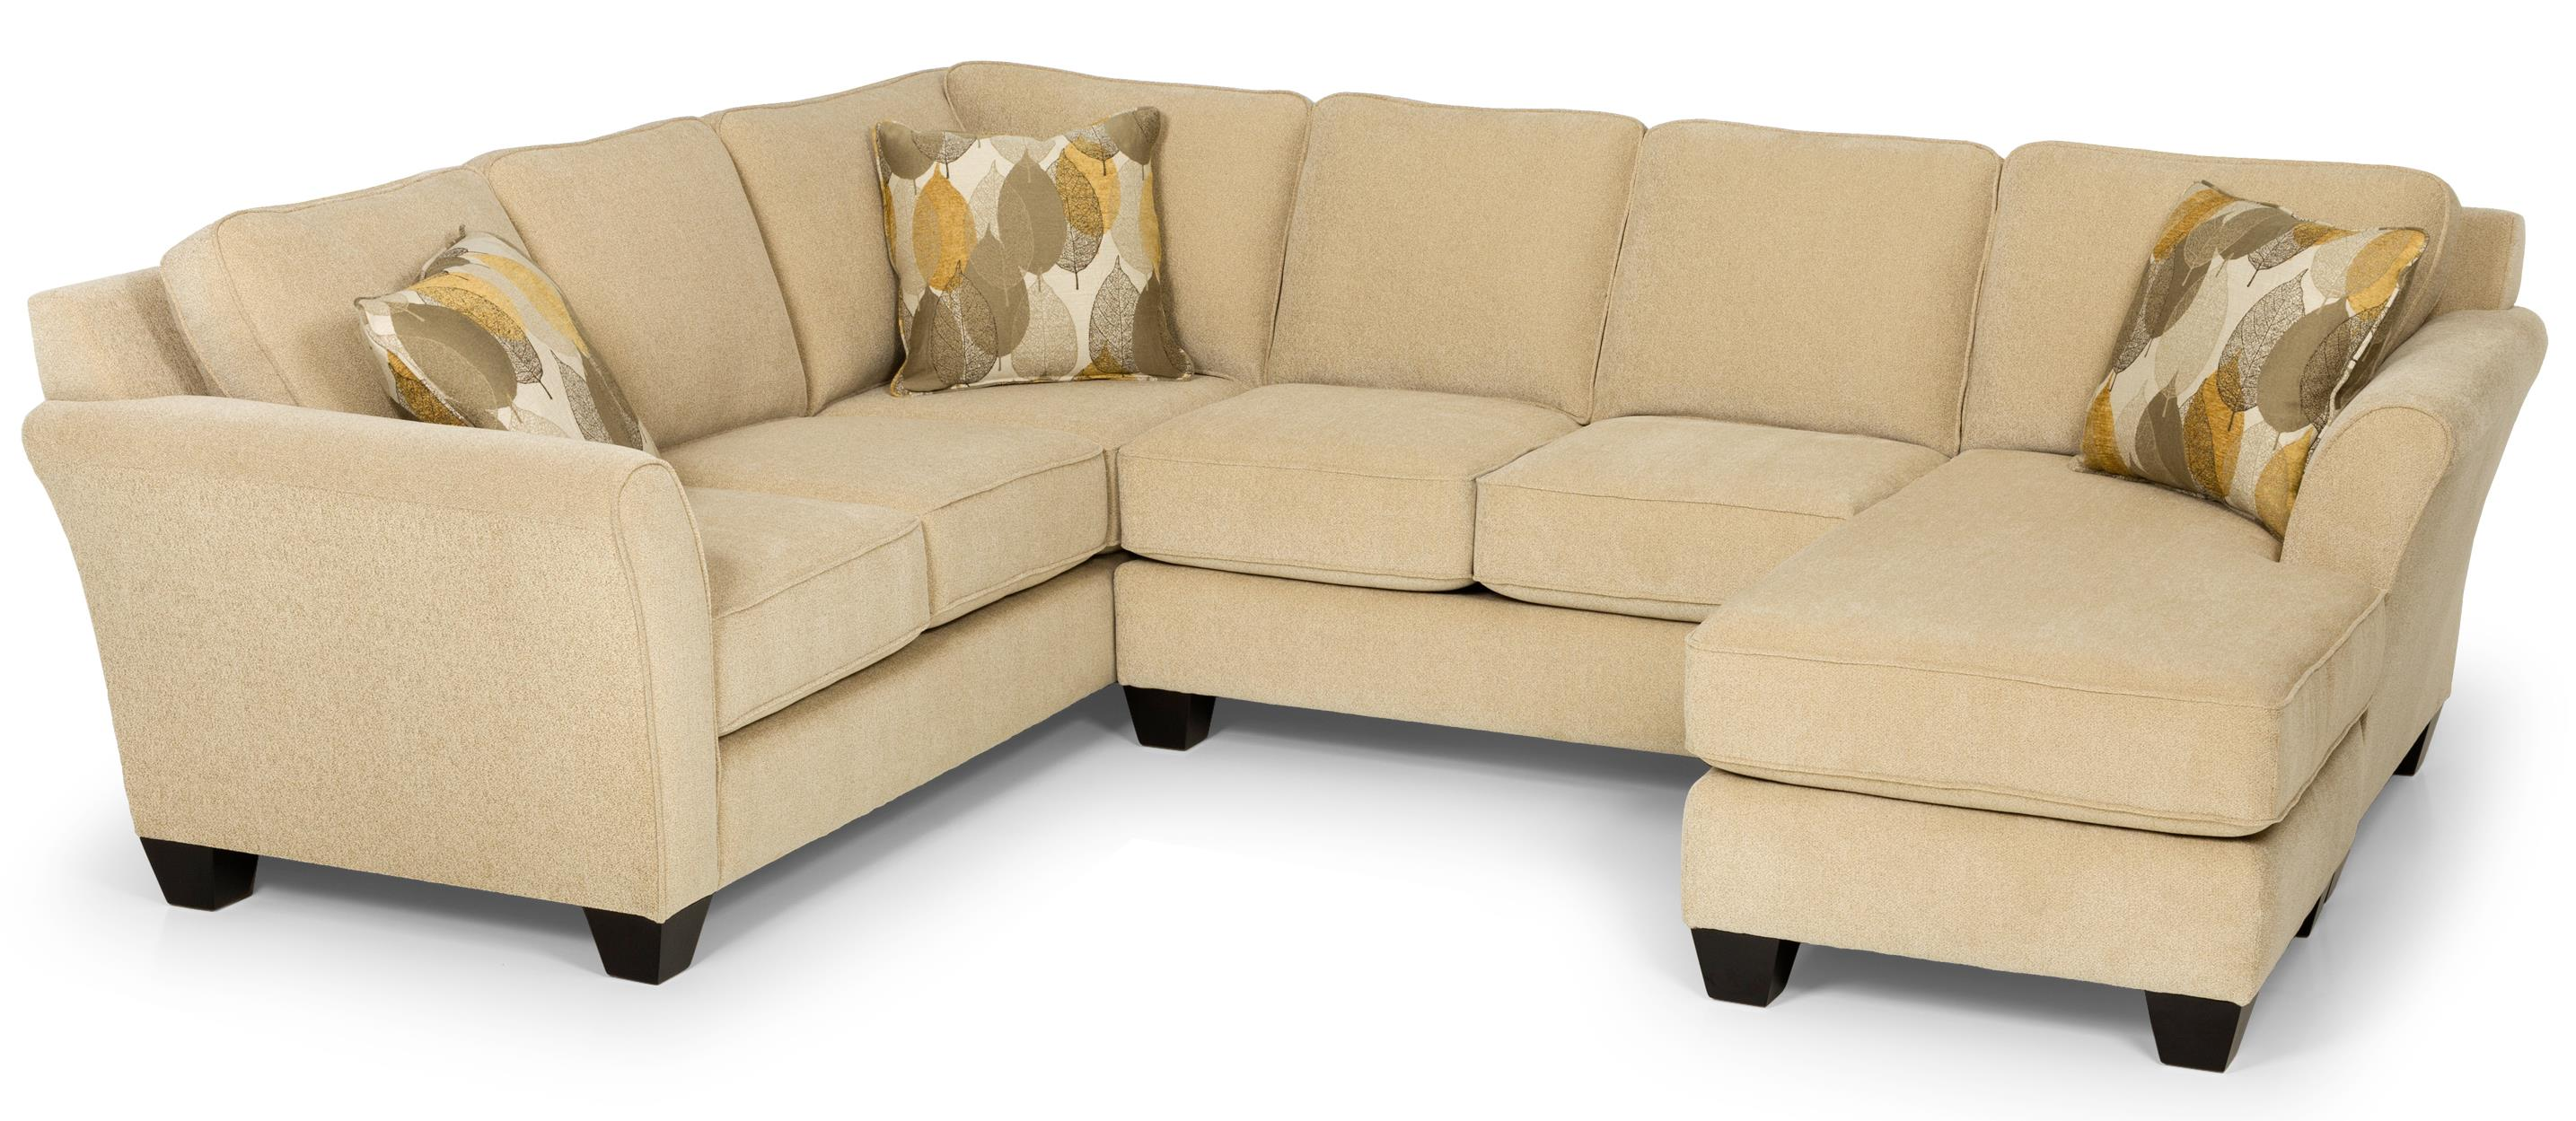 Stanton 184 Sectional Sofa - Item Number: 184-10L+45R